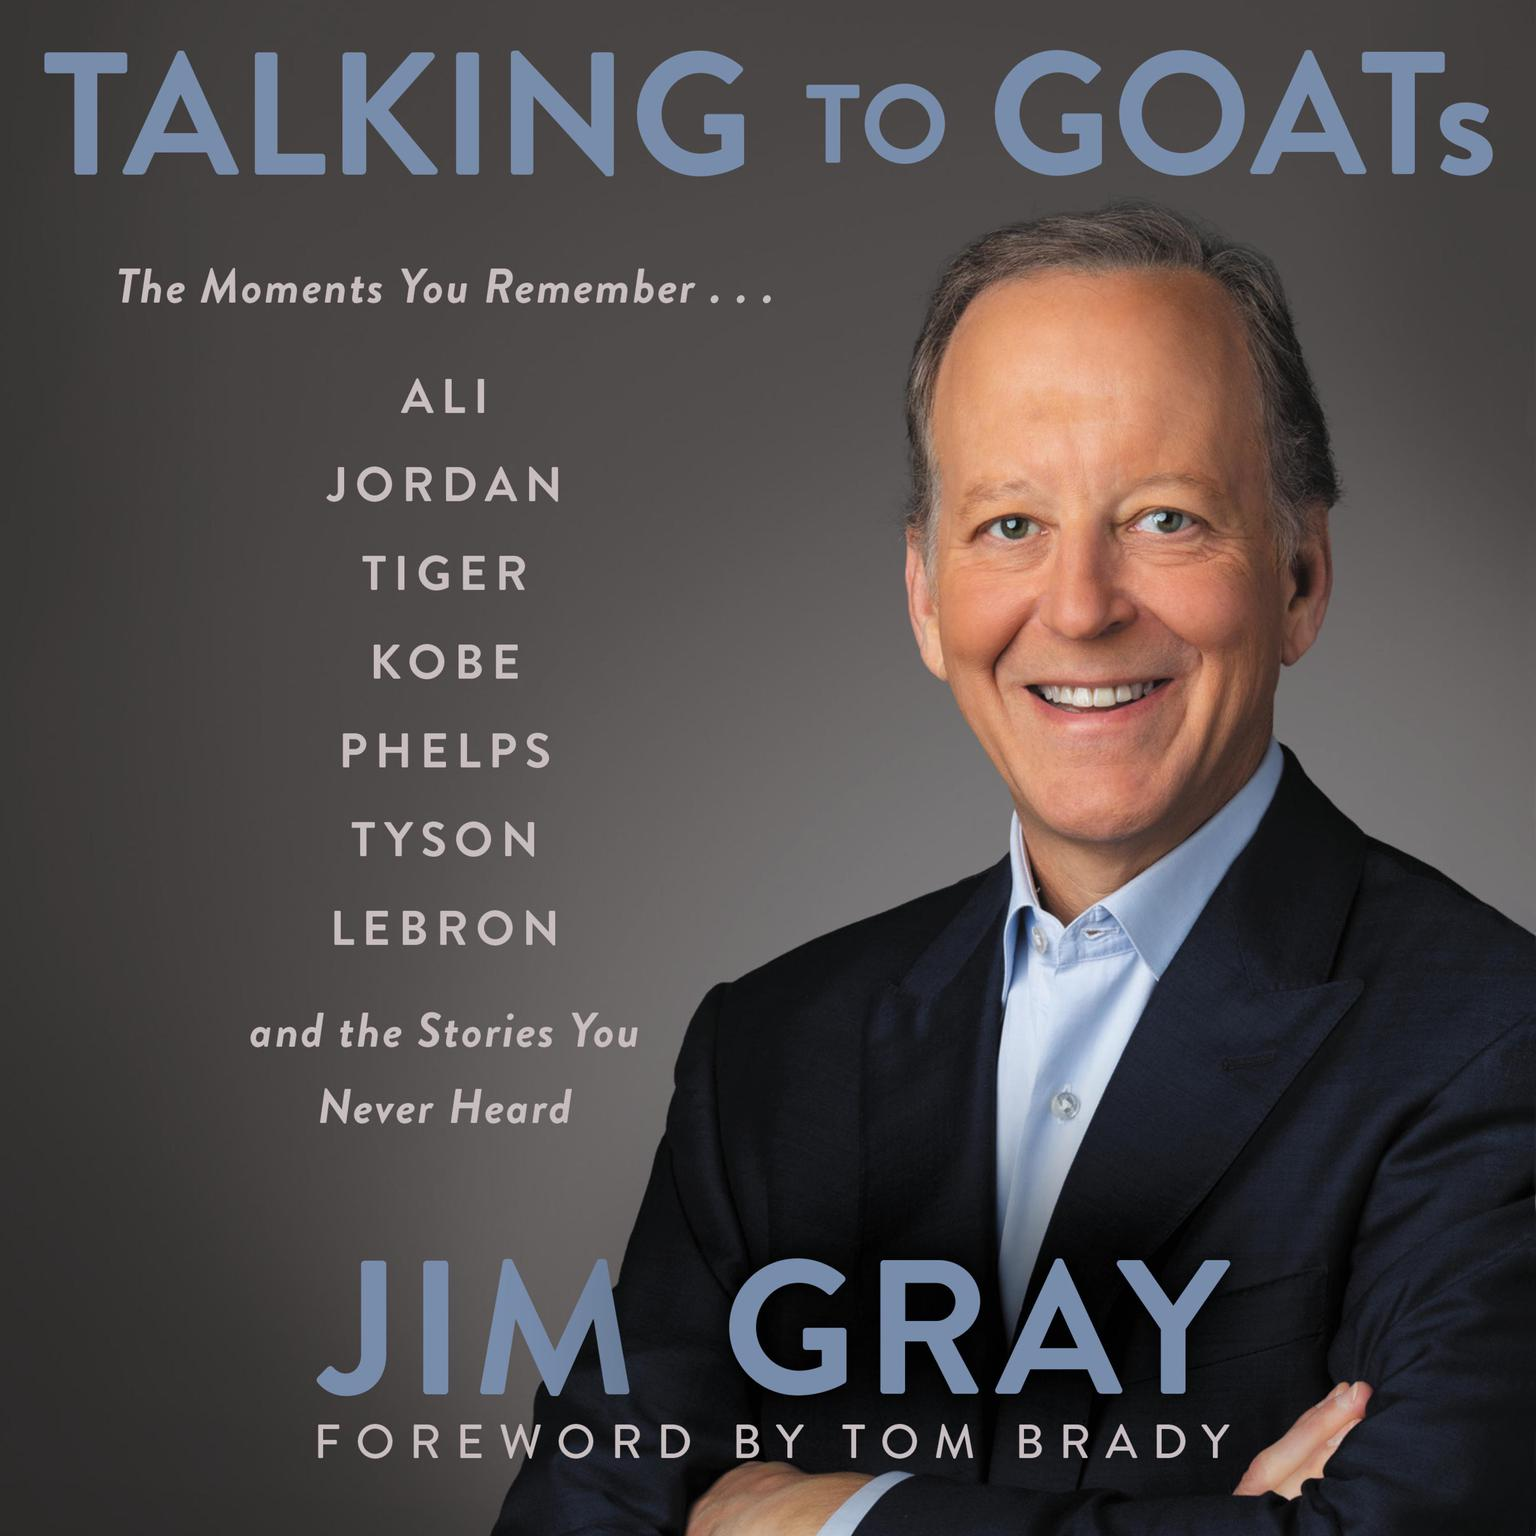 Talking to GOATs: The Moments You Remember and the Stories You Never Heard Audiobook, by Jim Gray